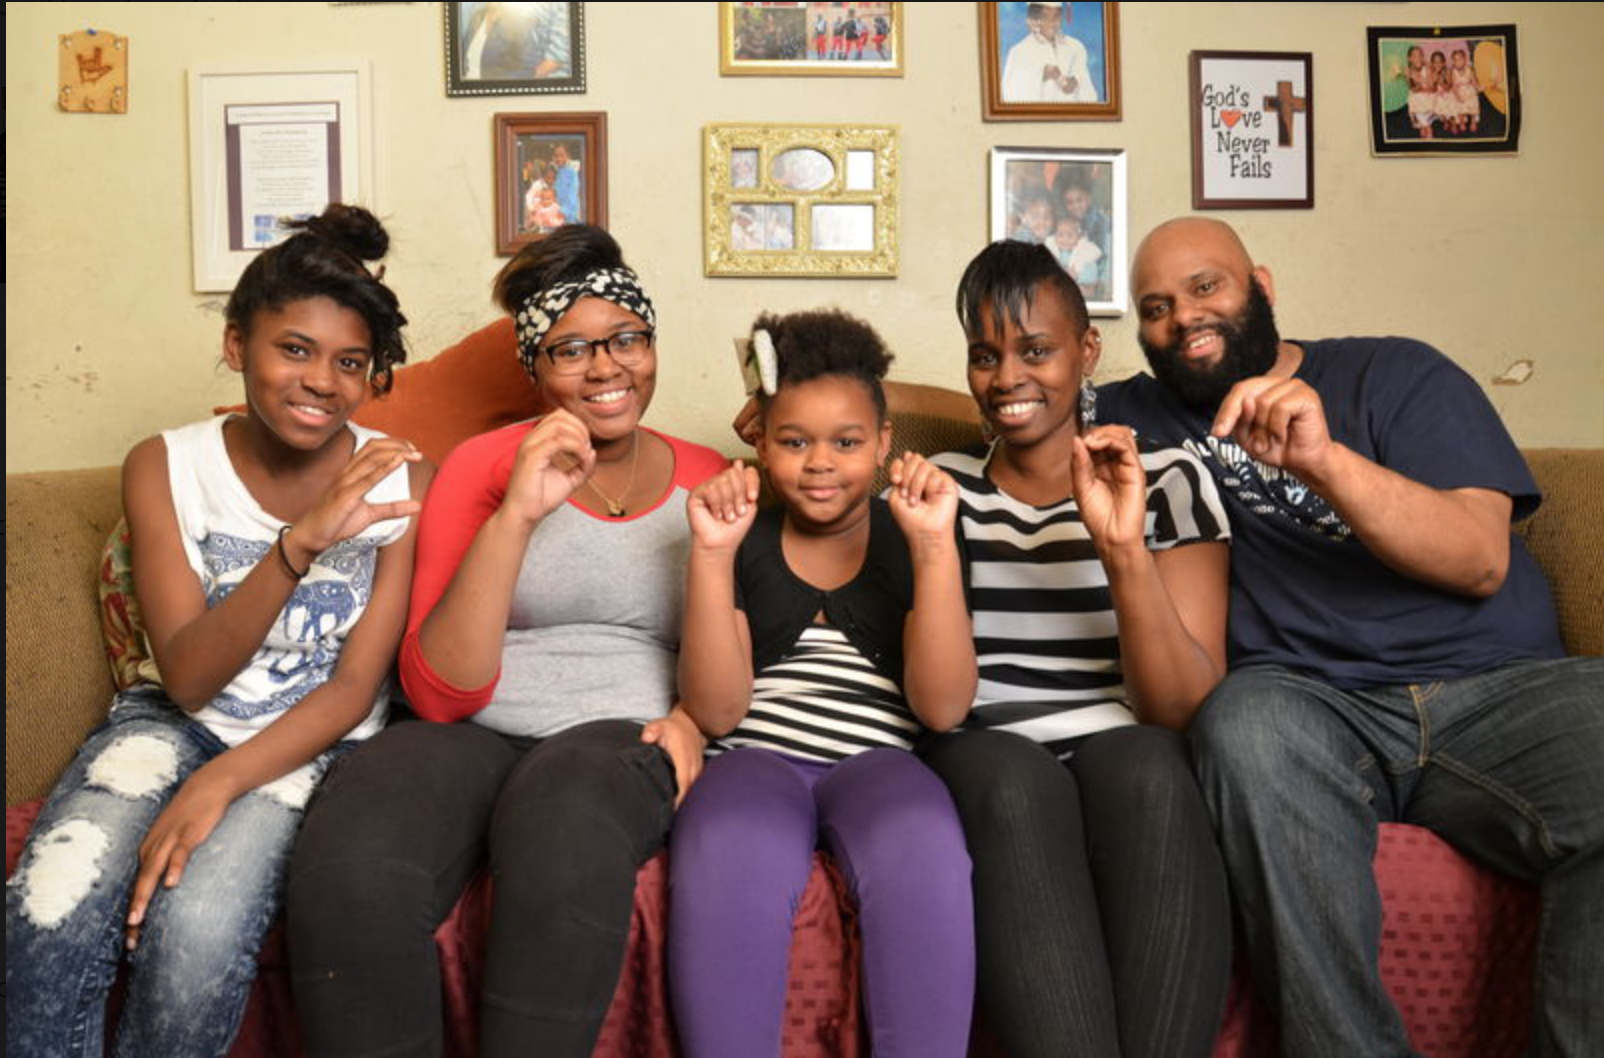 The Cotton family, 3 daughters, mom and dad, sit on their couch and signs their name